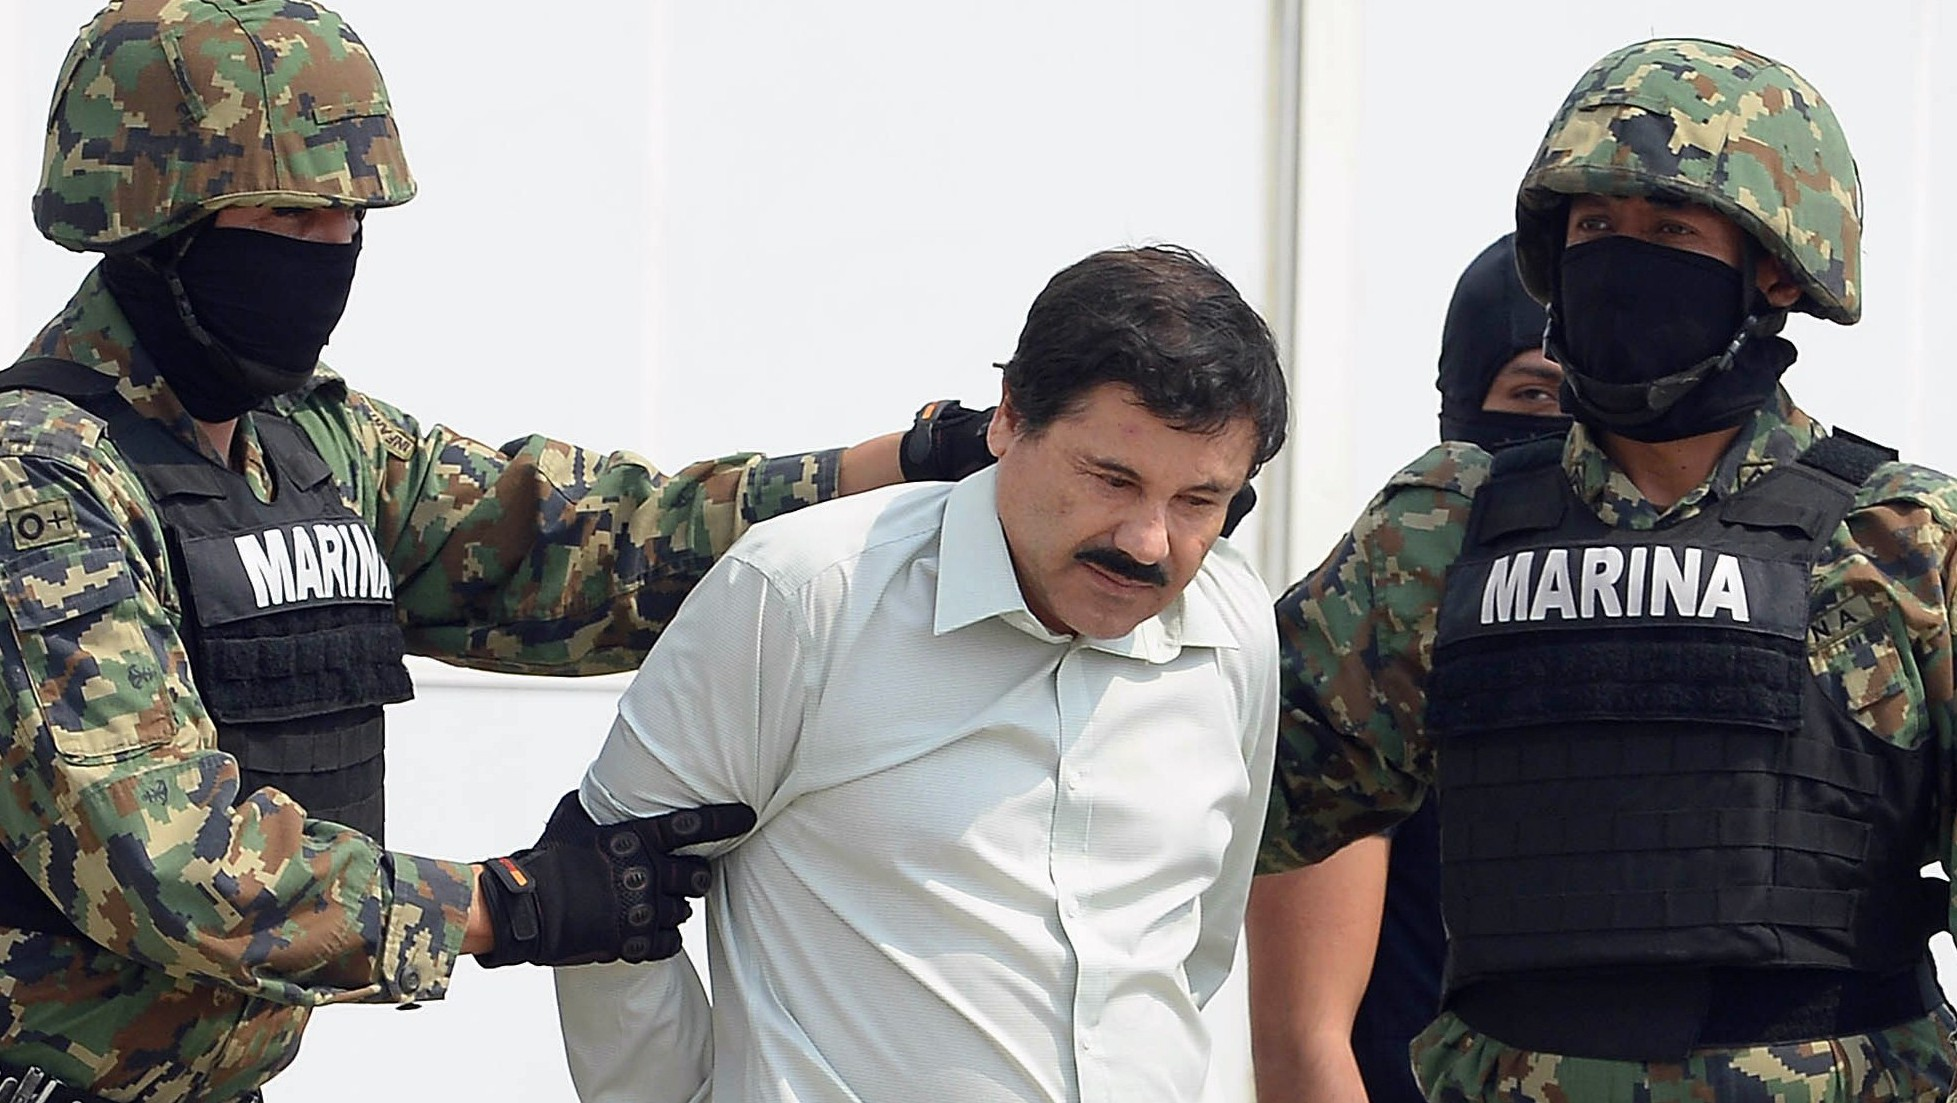 """El Chapo"" Guzman after his arrest in February 2014. (Getty)"